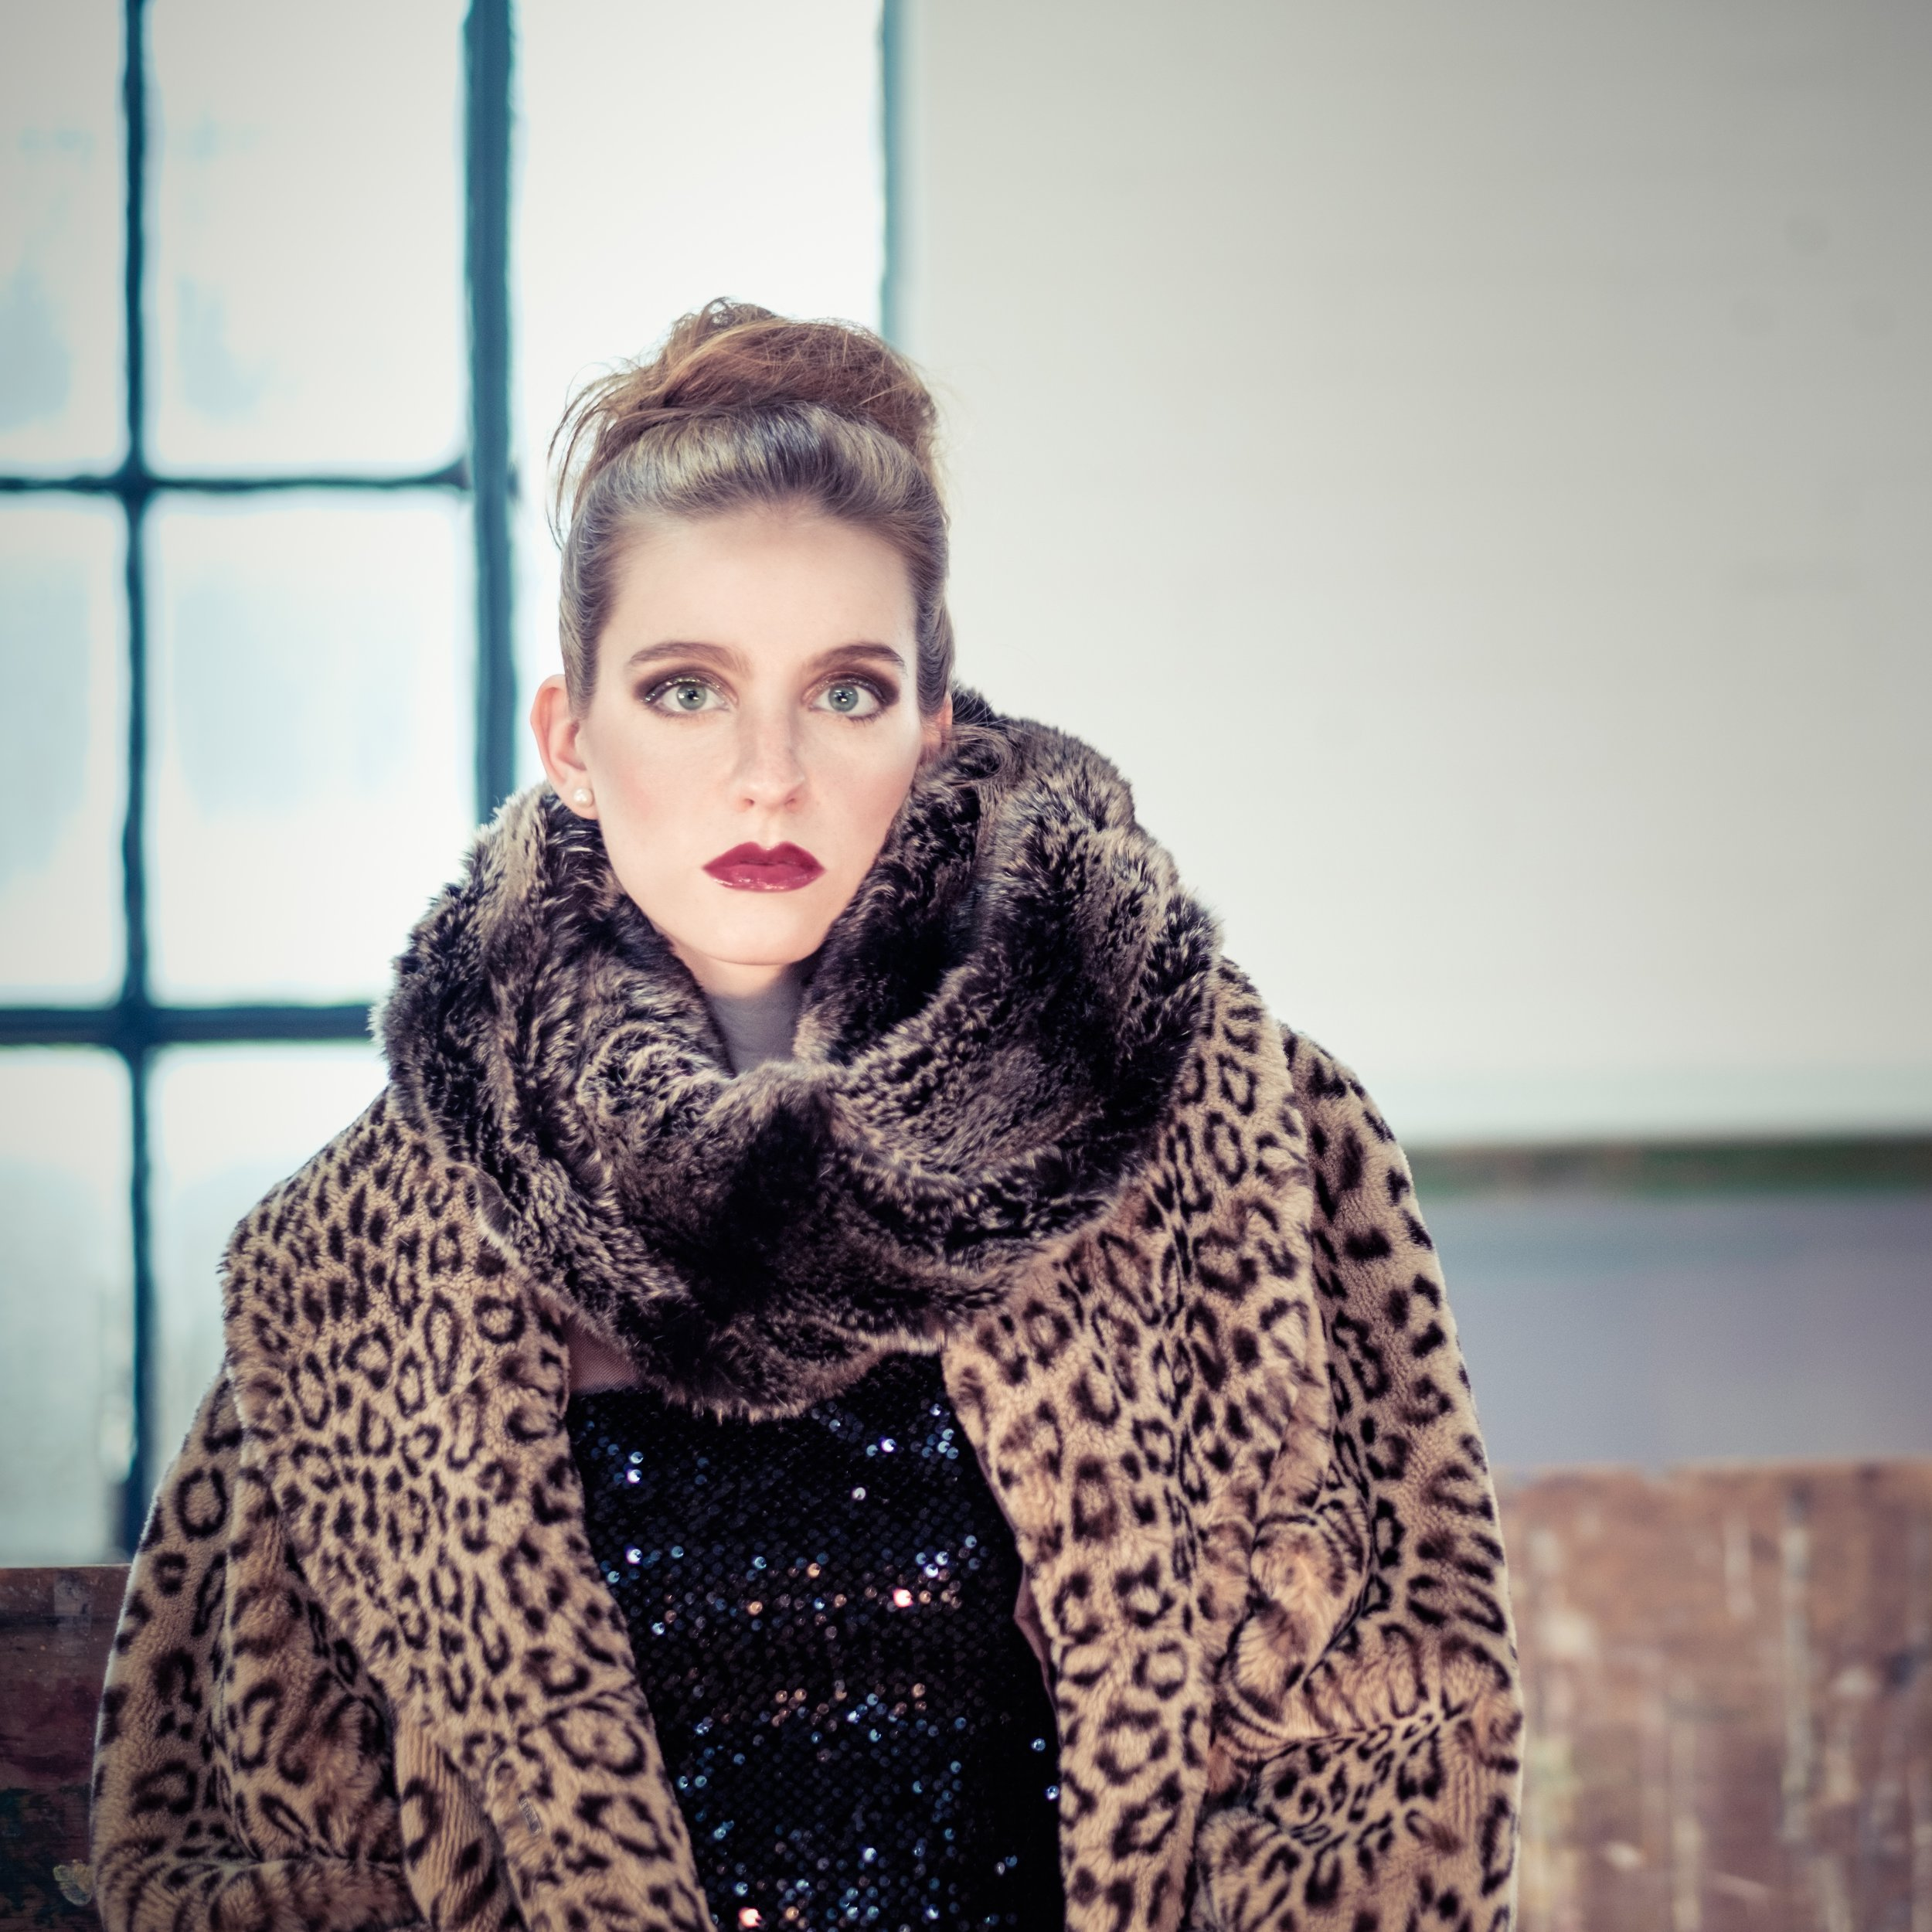 Ufurria's Infinity Scarf, providing a welcome extra layer -